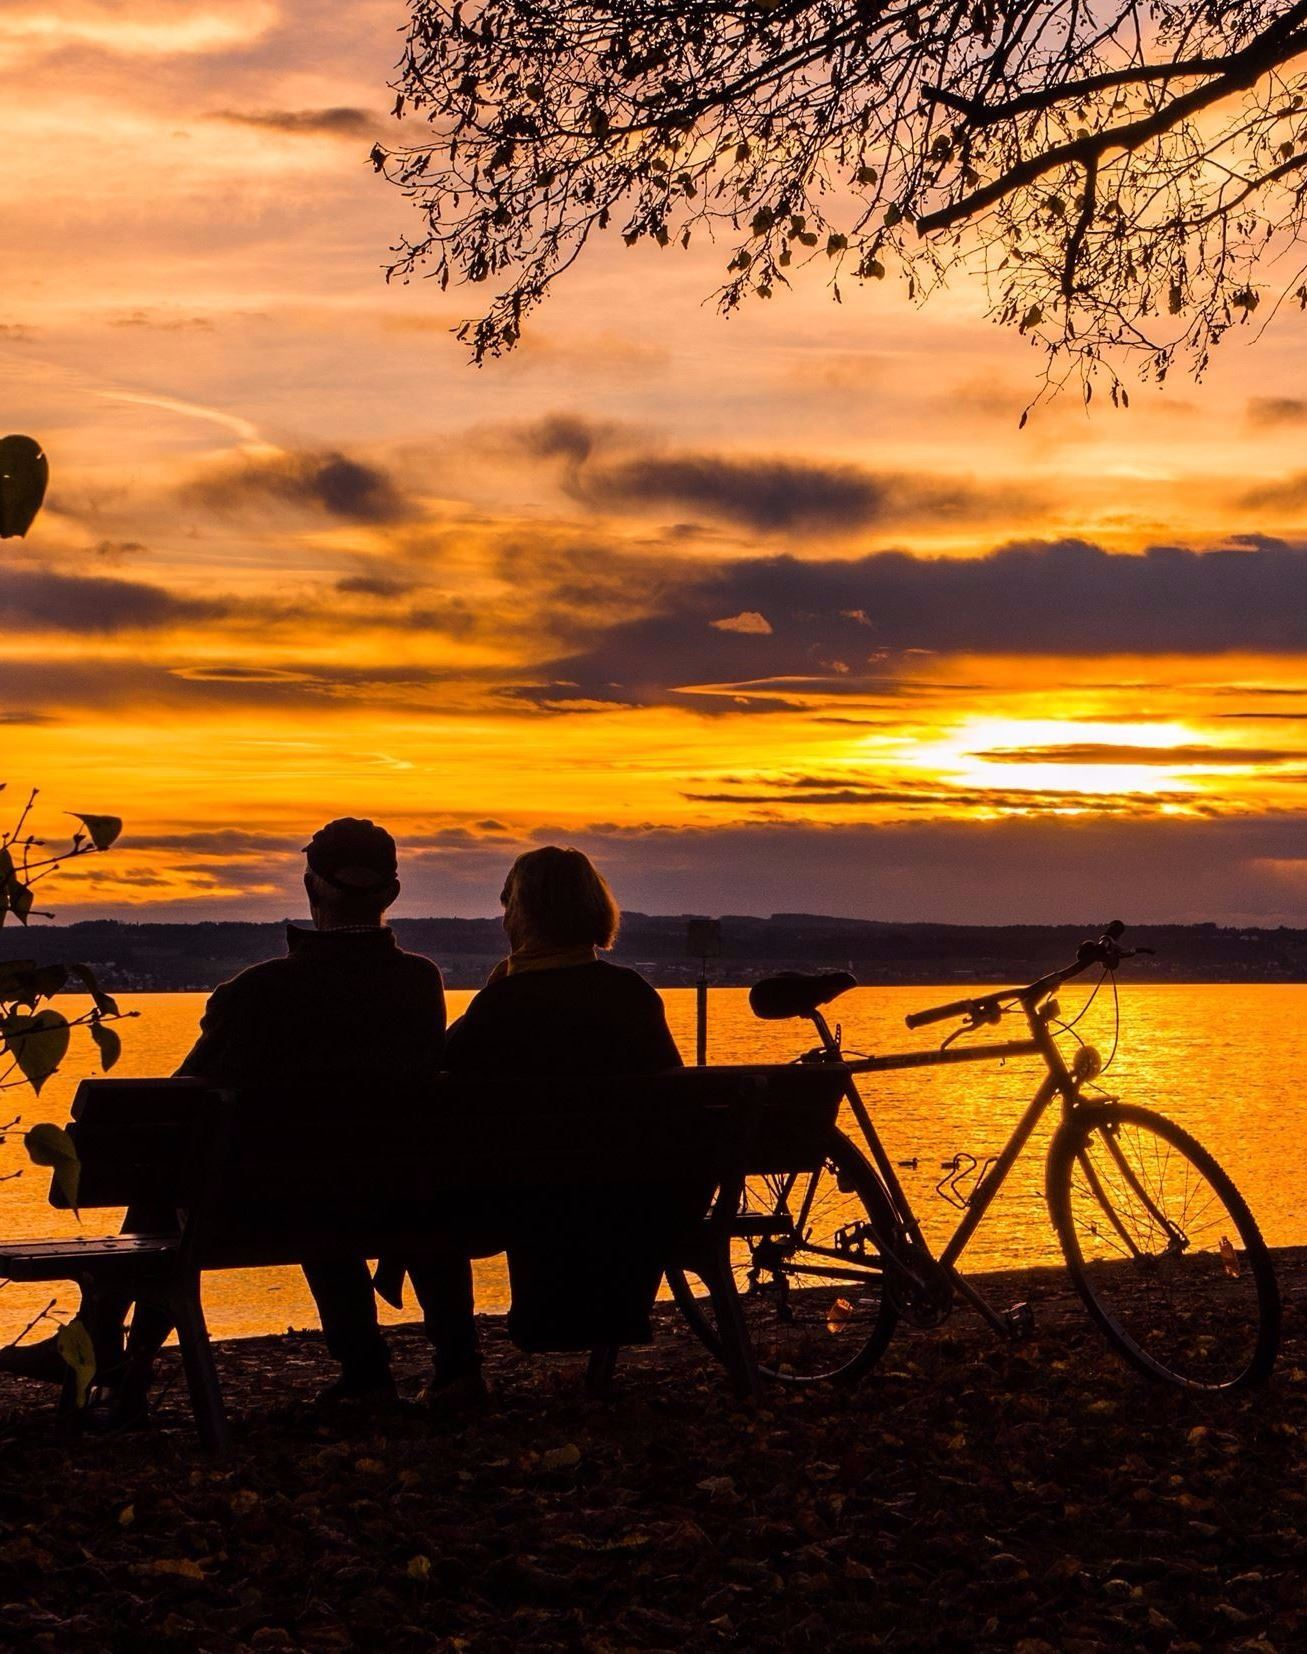 Image of a sunset silhouette of two people sitting on a park bench with a bike